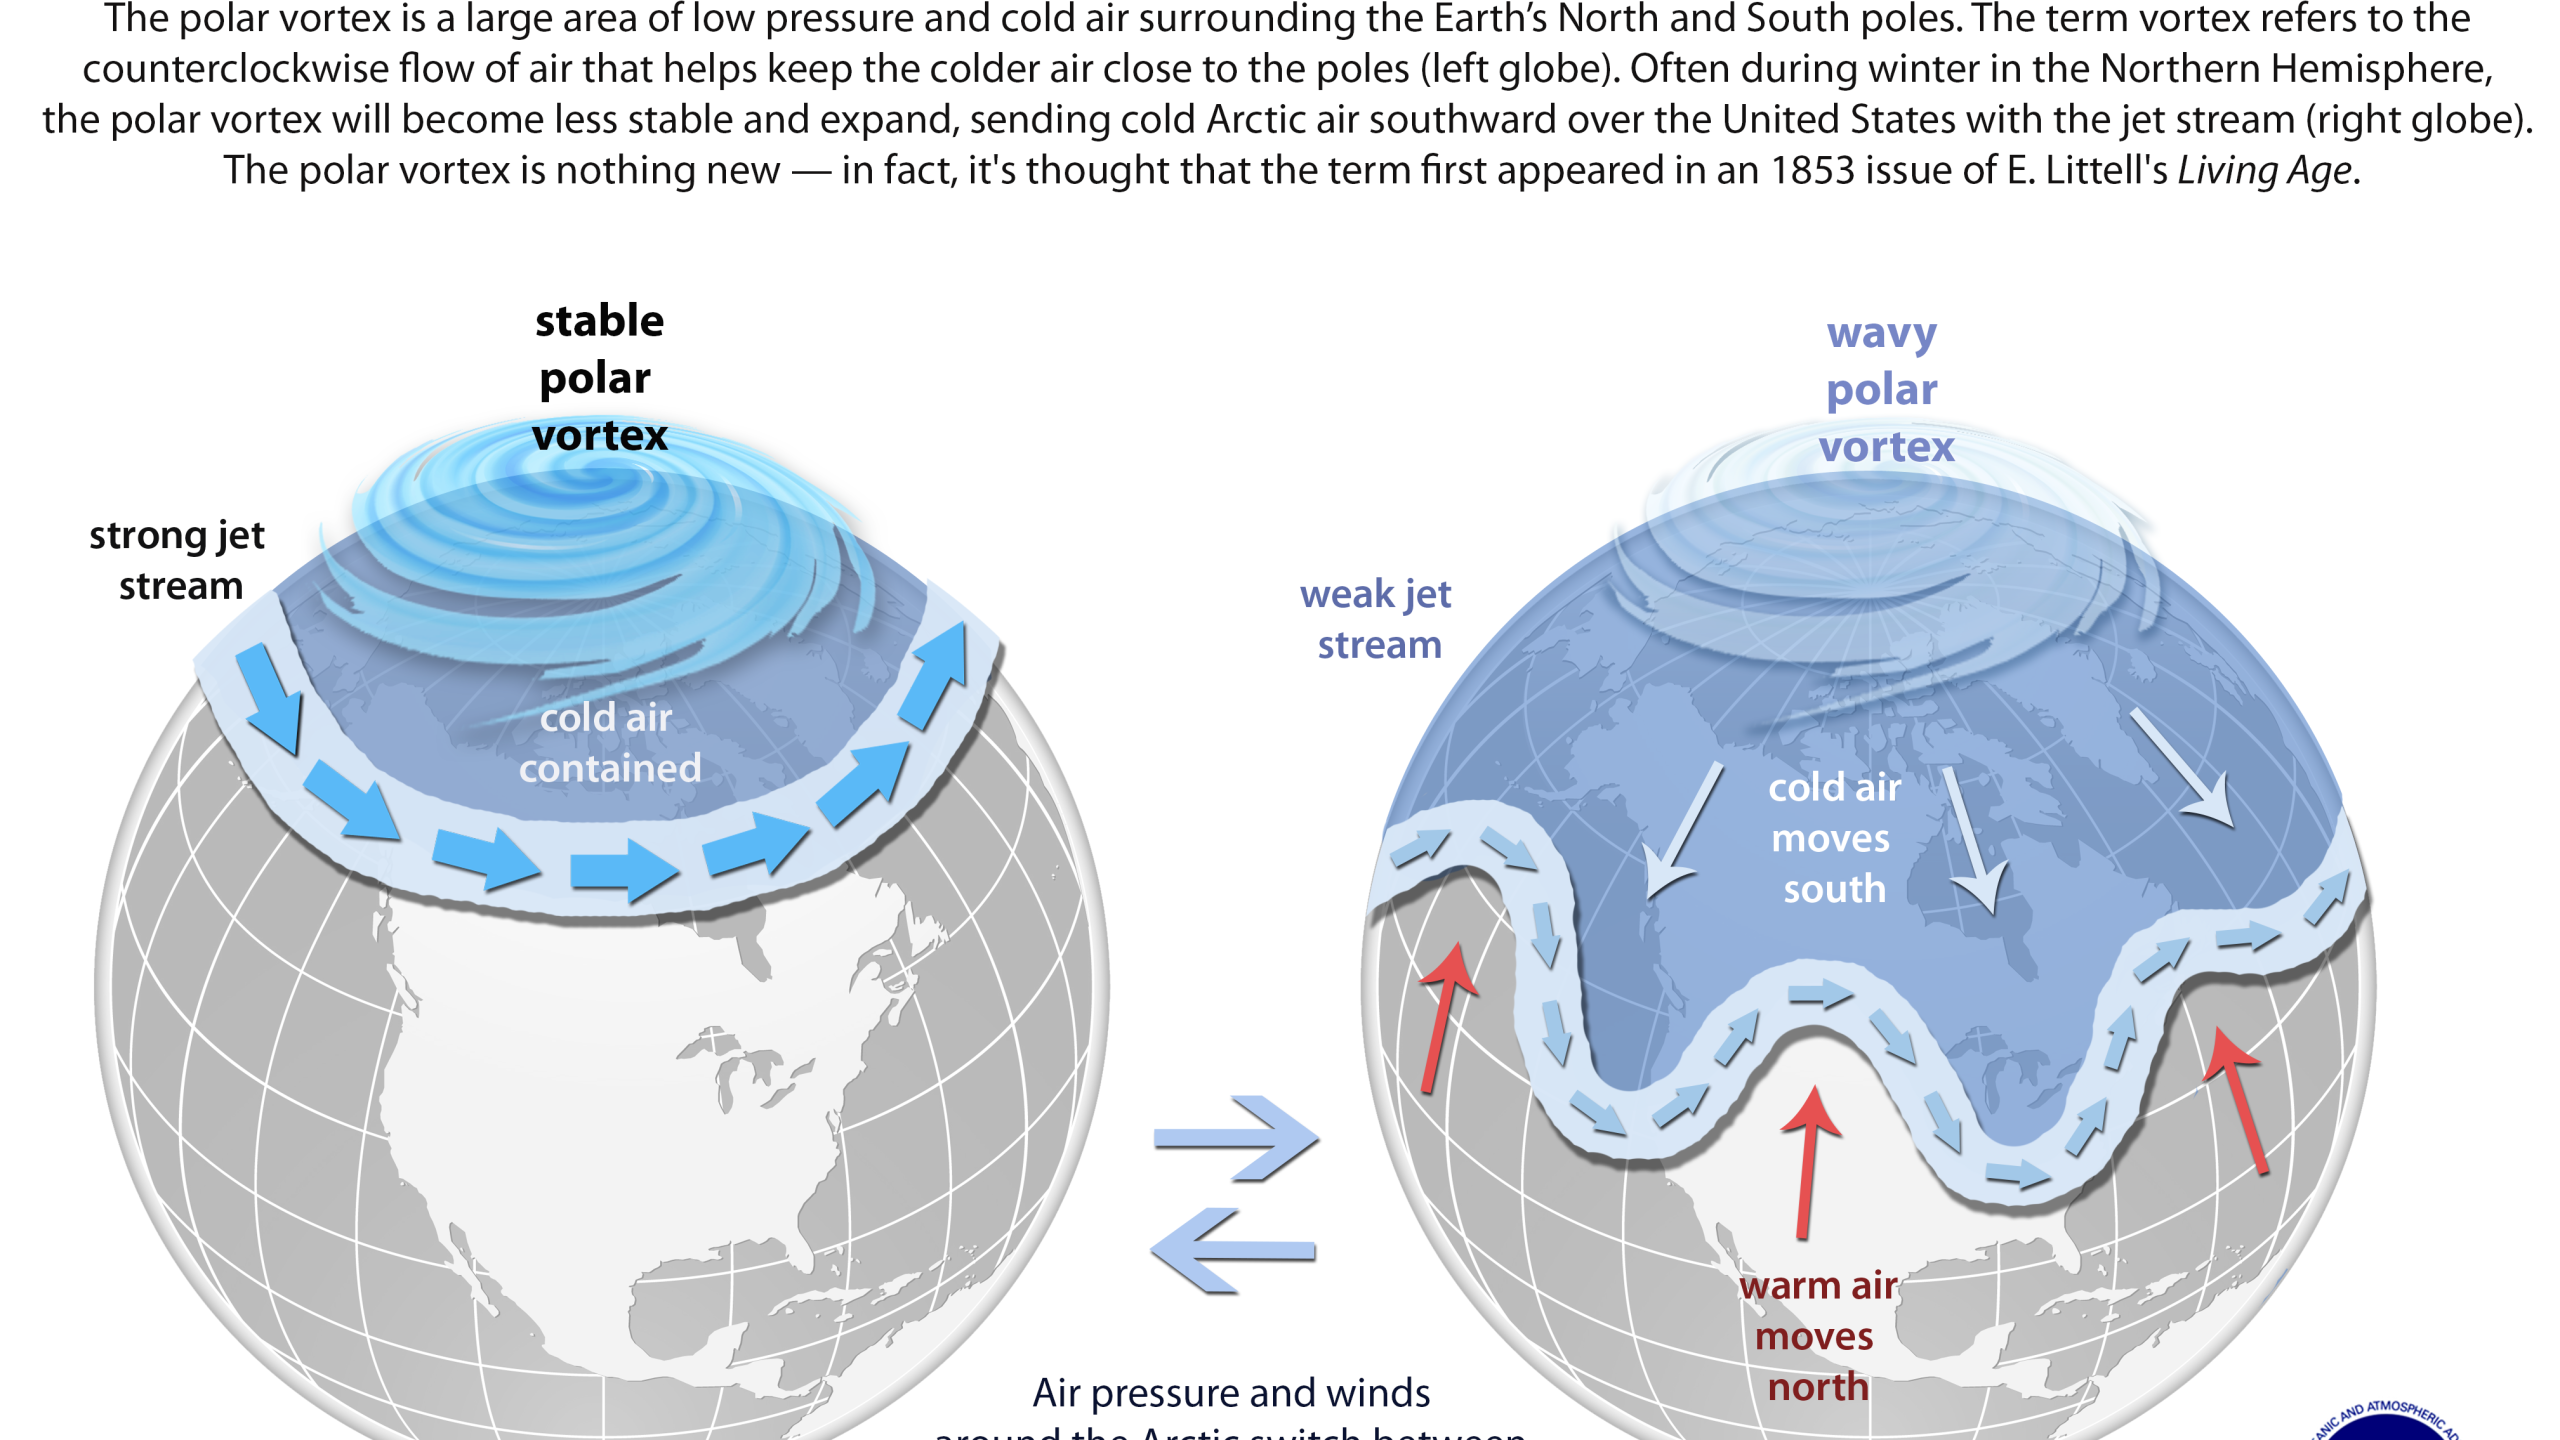 GRAPHIC - polarvortex_explained_updated 012919 - 4034x2912_1548877639996.png.jpg